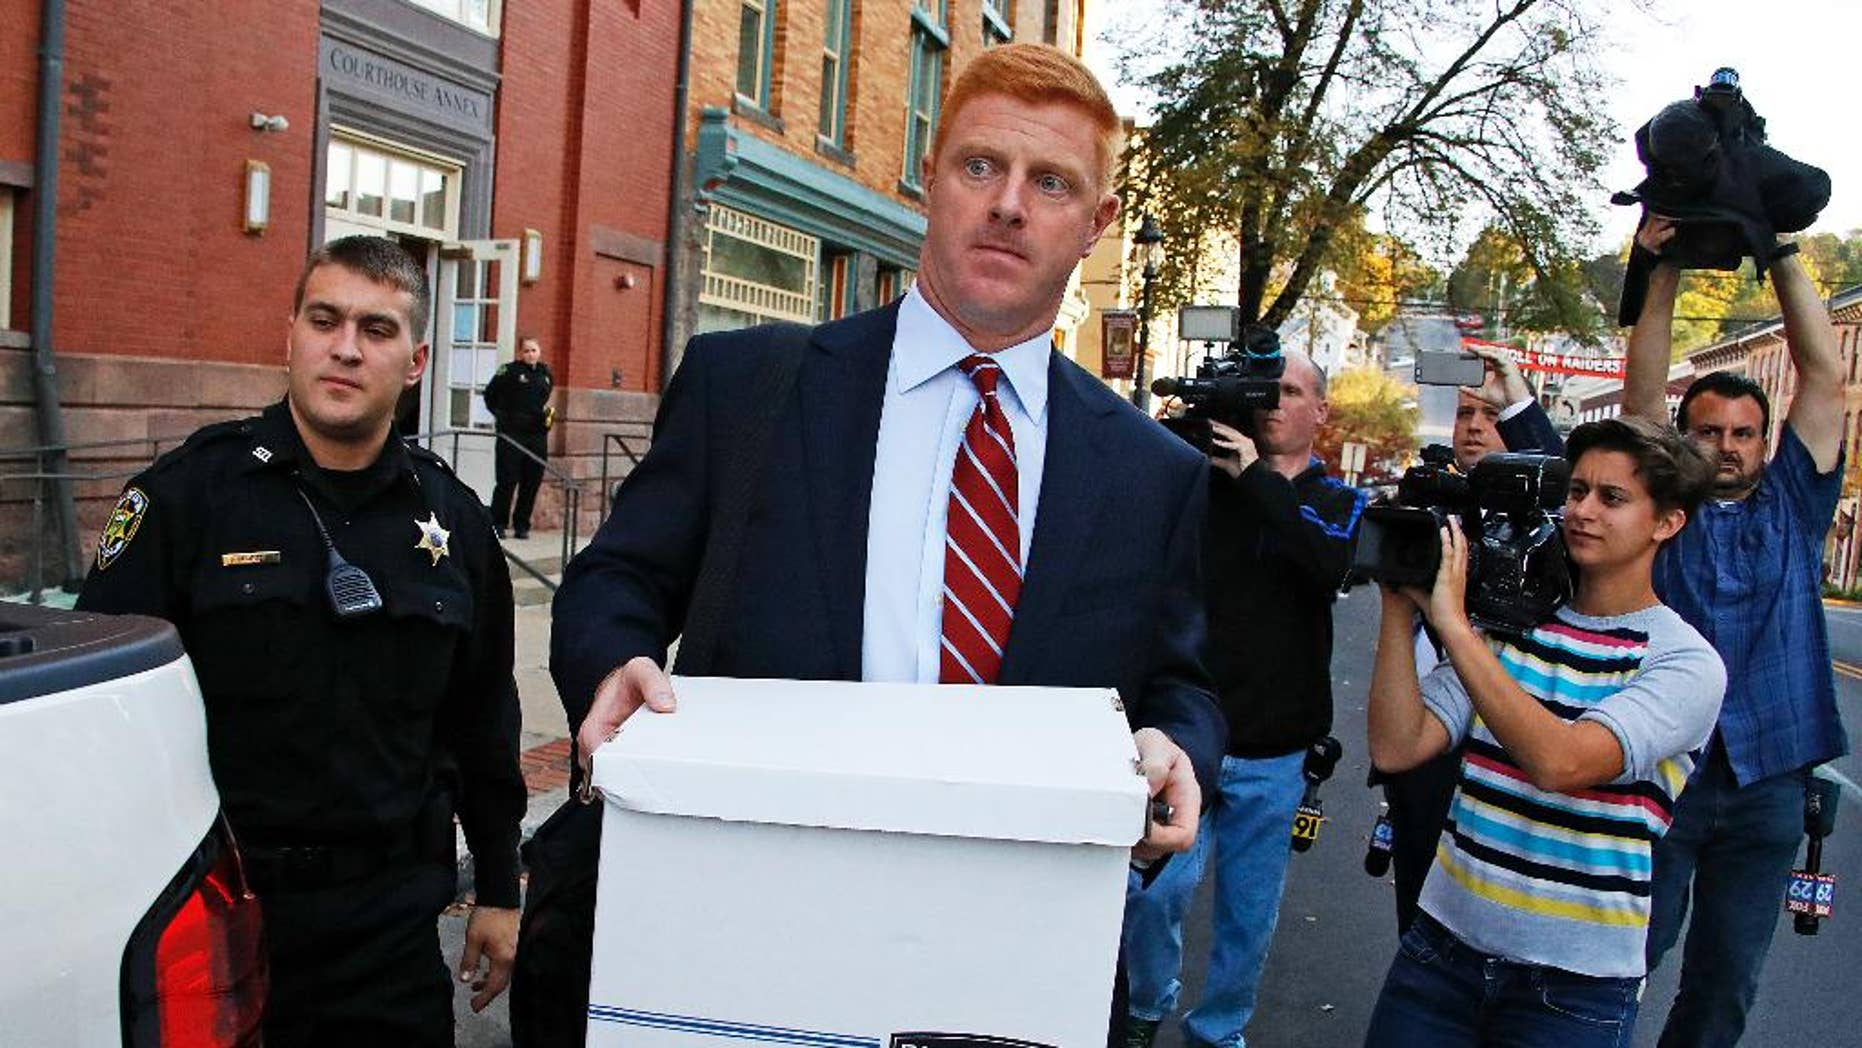 Former Penn State University assistant football coach Mike McQueary, center, leaves the Centre County Courthouse Annex in Bellefonte, Pa., Monday, Oct. 17, 2016. The trial for McQueary's defamation and whistleblower lawsuit against Penn State over how it treated him for complaining about assistant football coach Jerry Sandusky sexually abusing a boy got underway with opening arguments on Monday. (AP Photo/Gene J. Puskar)